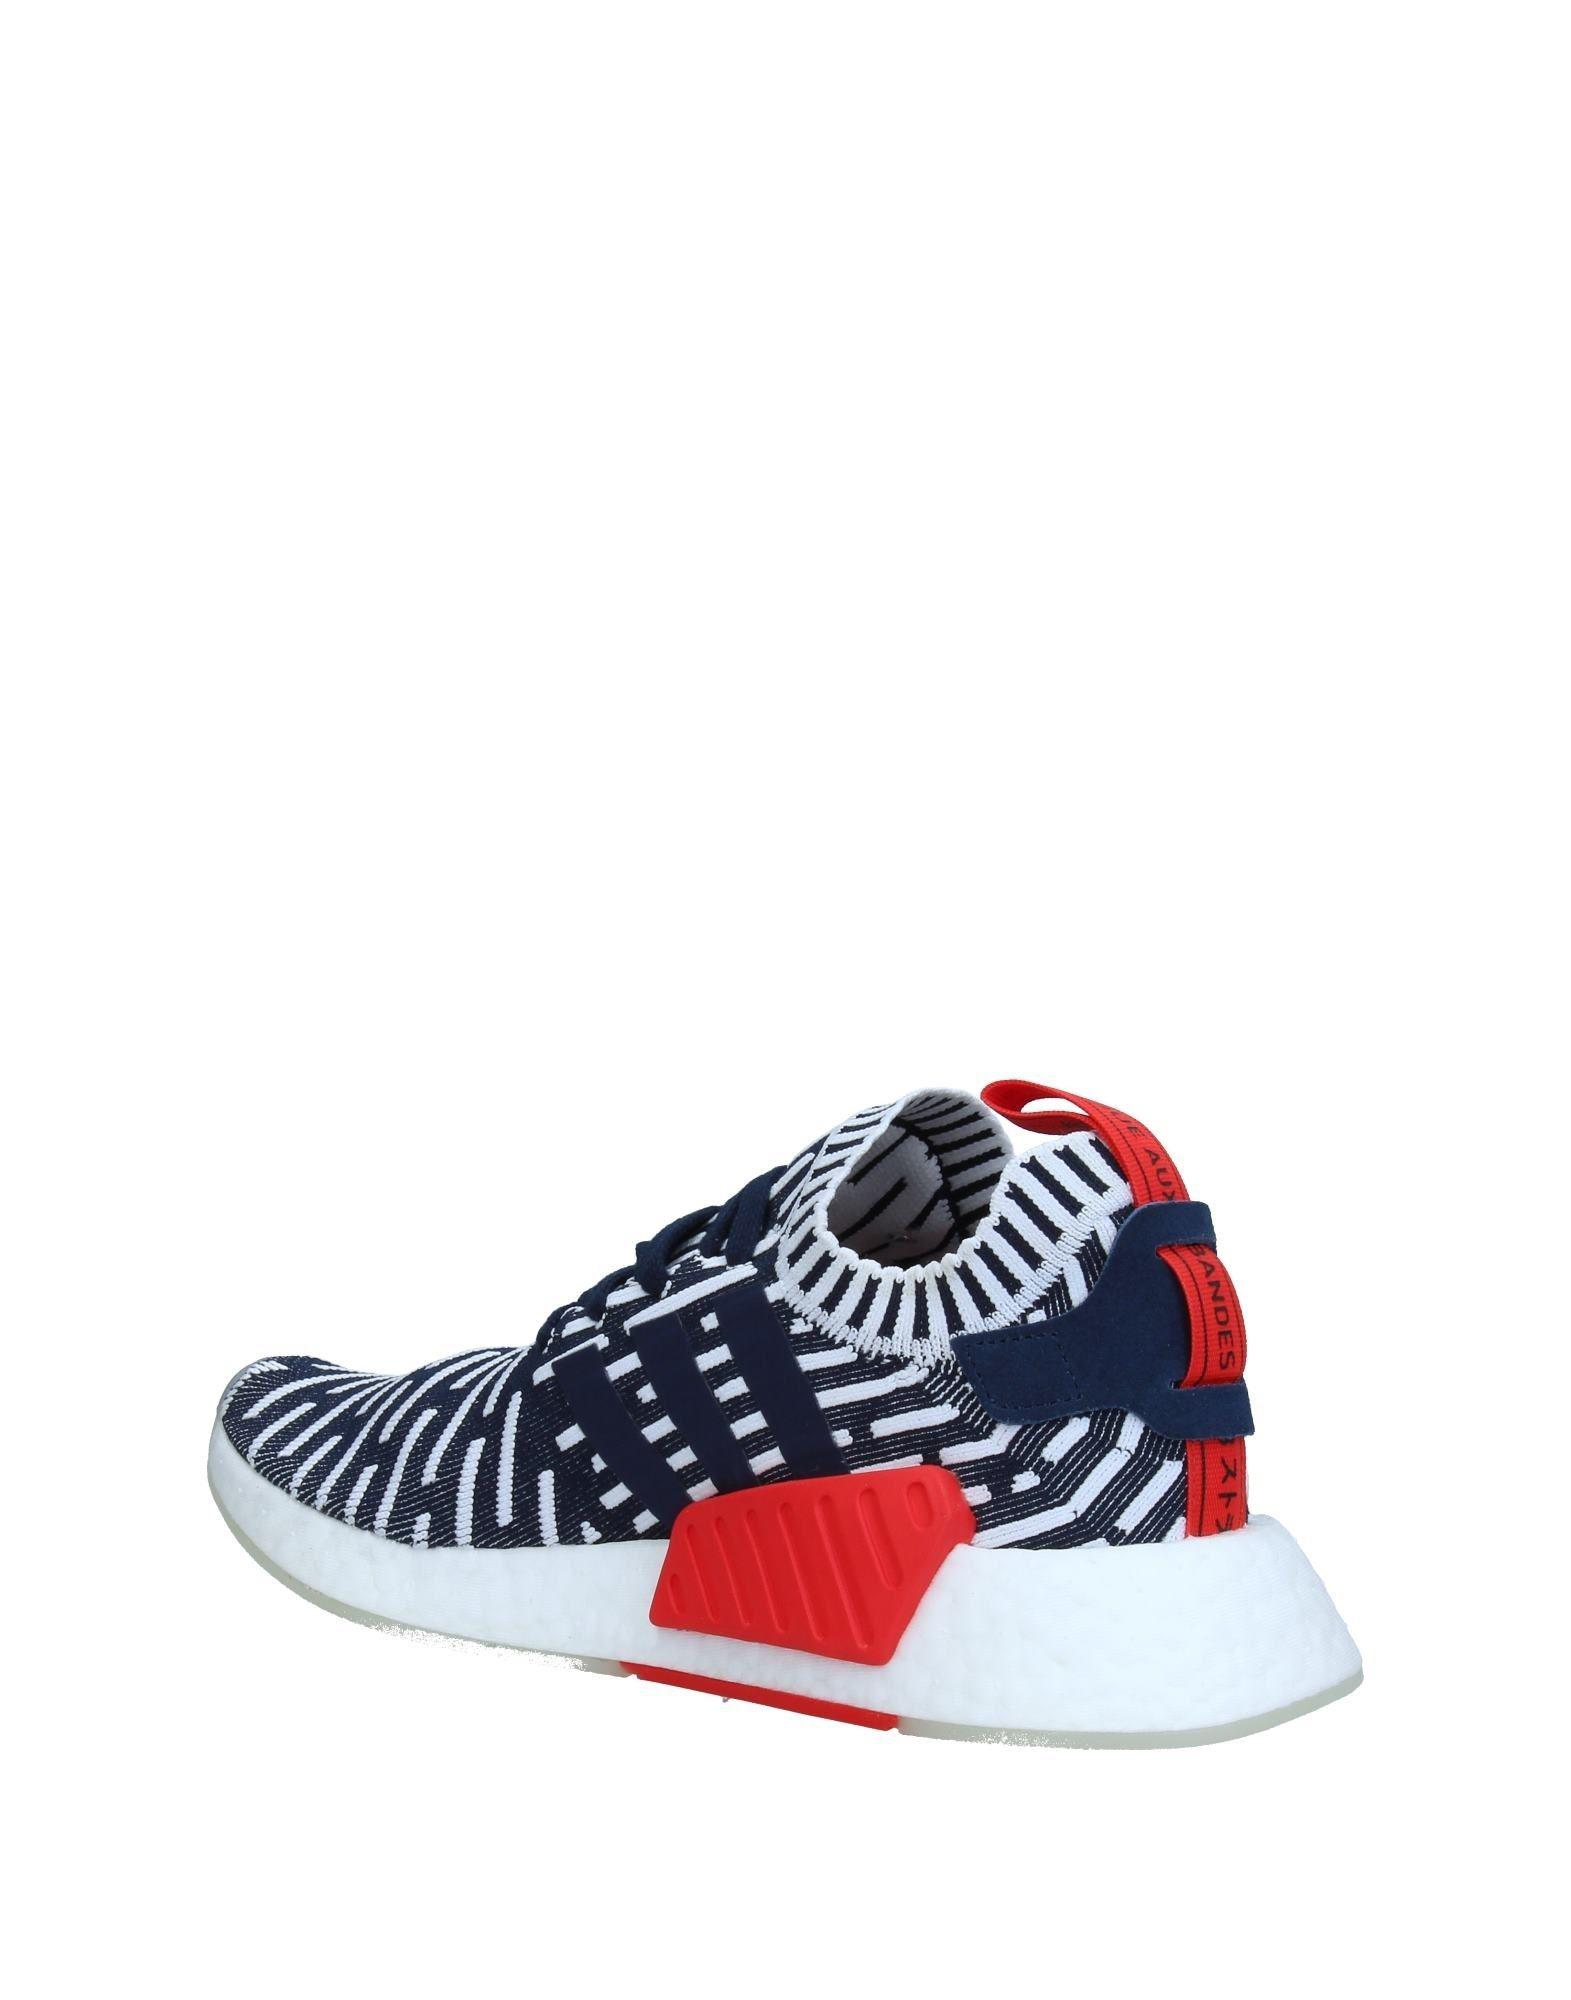 142c08d2a adidas Originals Nmd R2 Prime-knit Sneakers in Blue for Men - Save  47.18614718614719% - Lyst